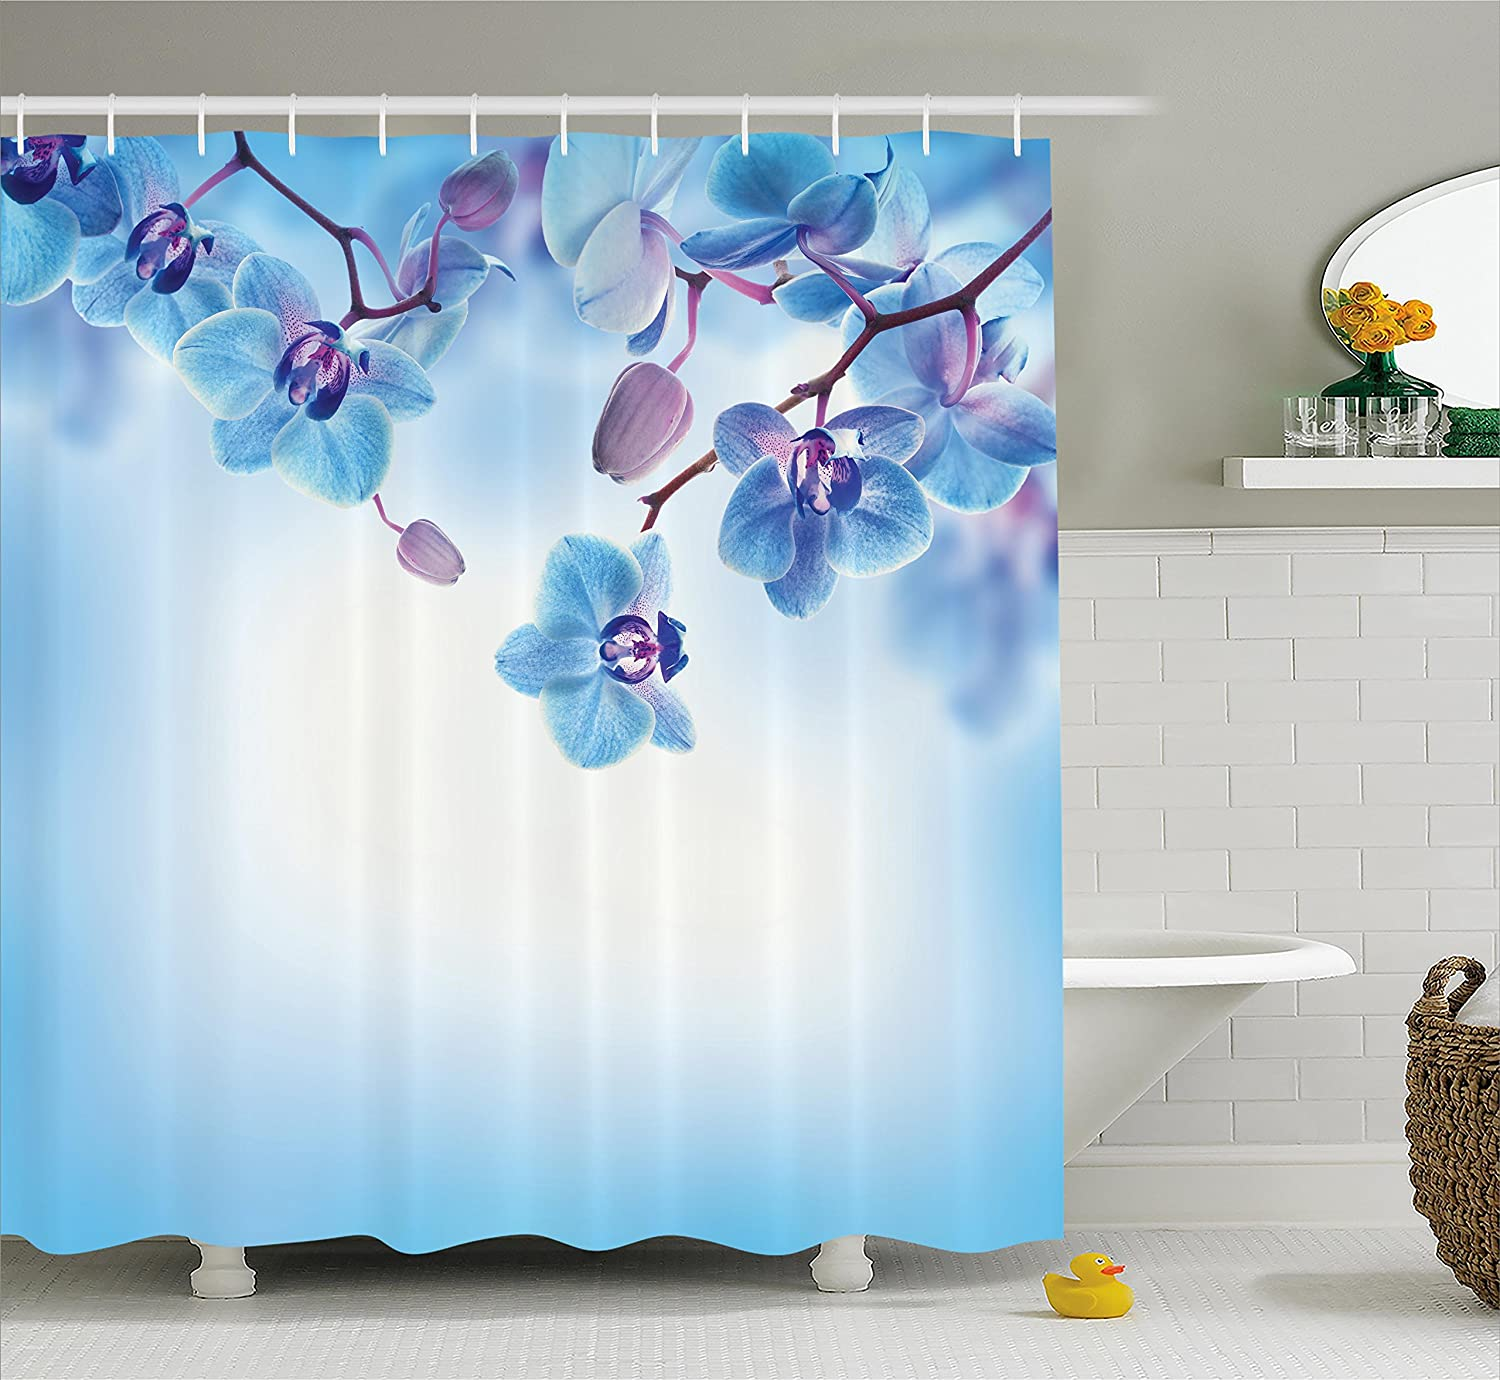 Fabric Bathroom Decor Set with Hooks Orchids Asian Natural Flowers Reflections on Water for Spring Calming Art Ambesonne Flower Decor Shower Curtain Blue Purple 75 Inches Long